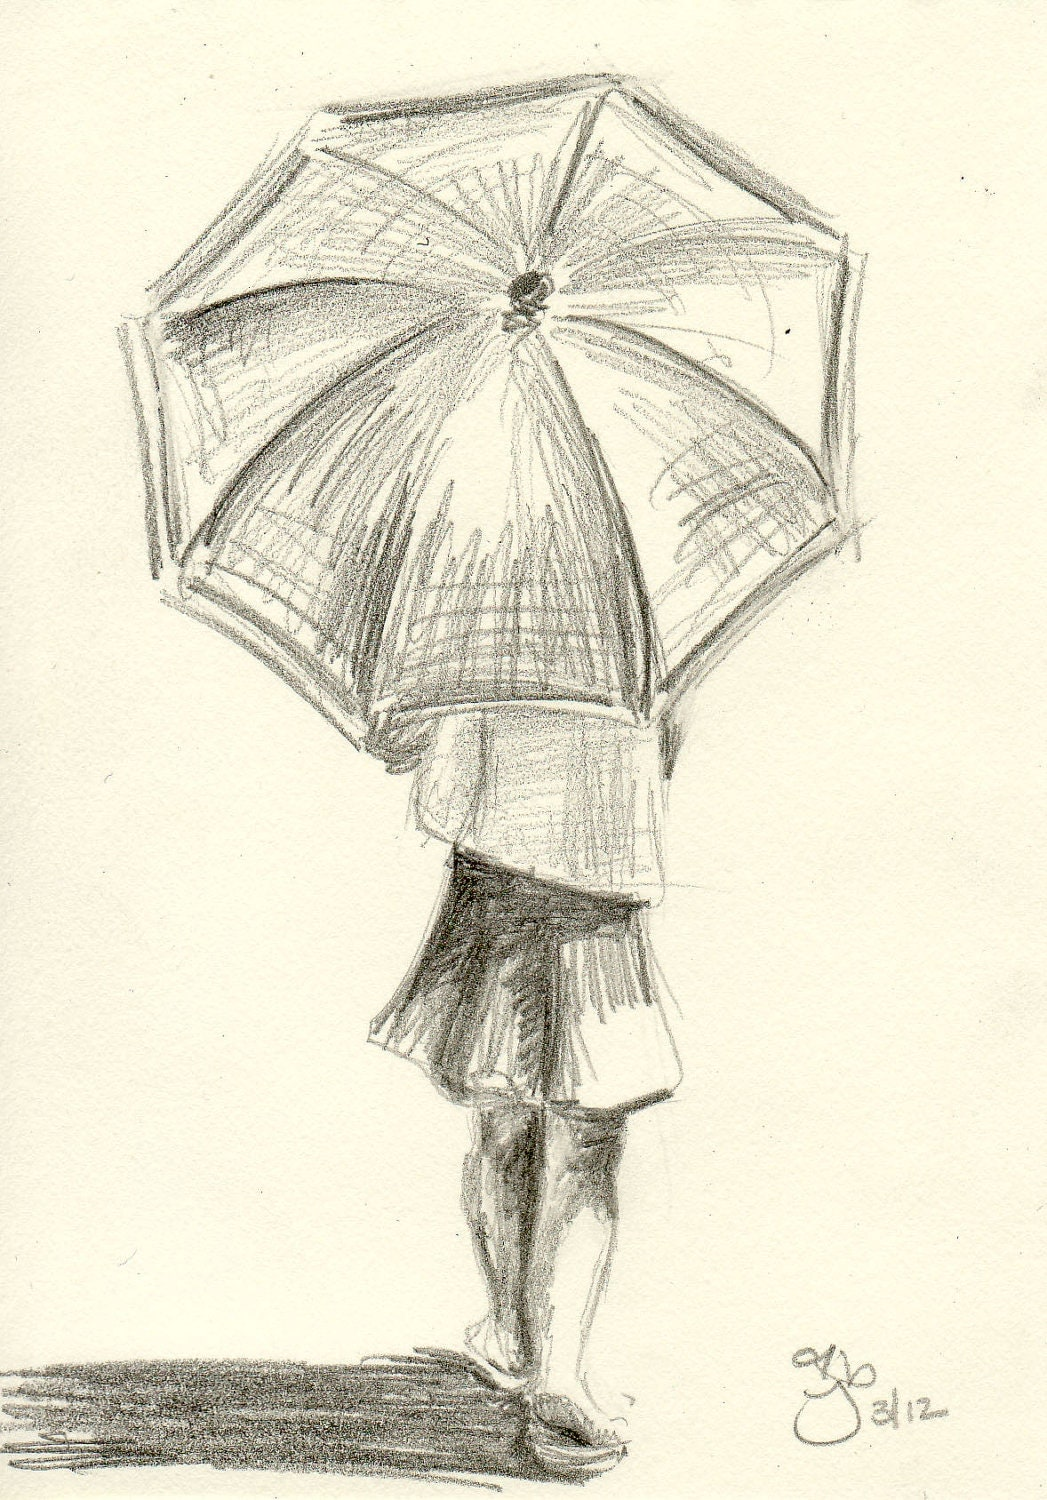 Girl with umbrella 4x6 pencil study for Unique sketches